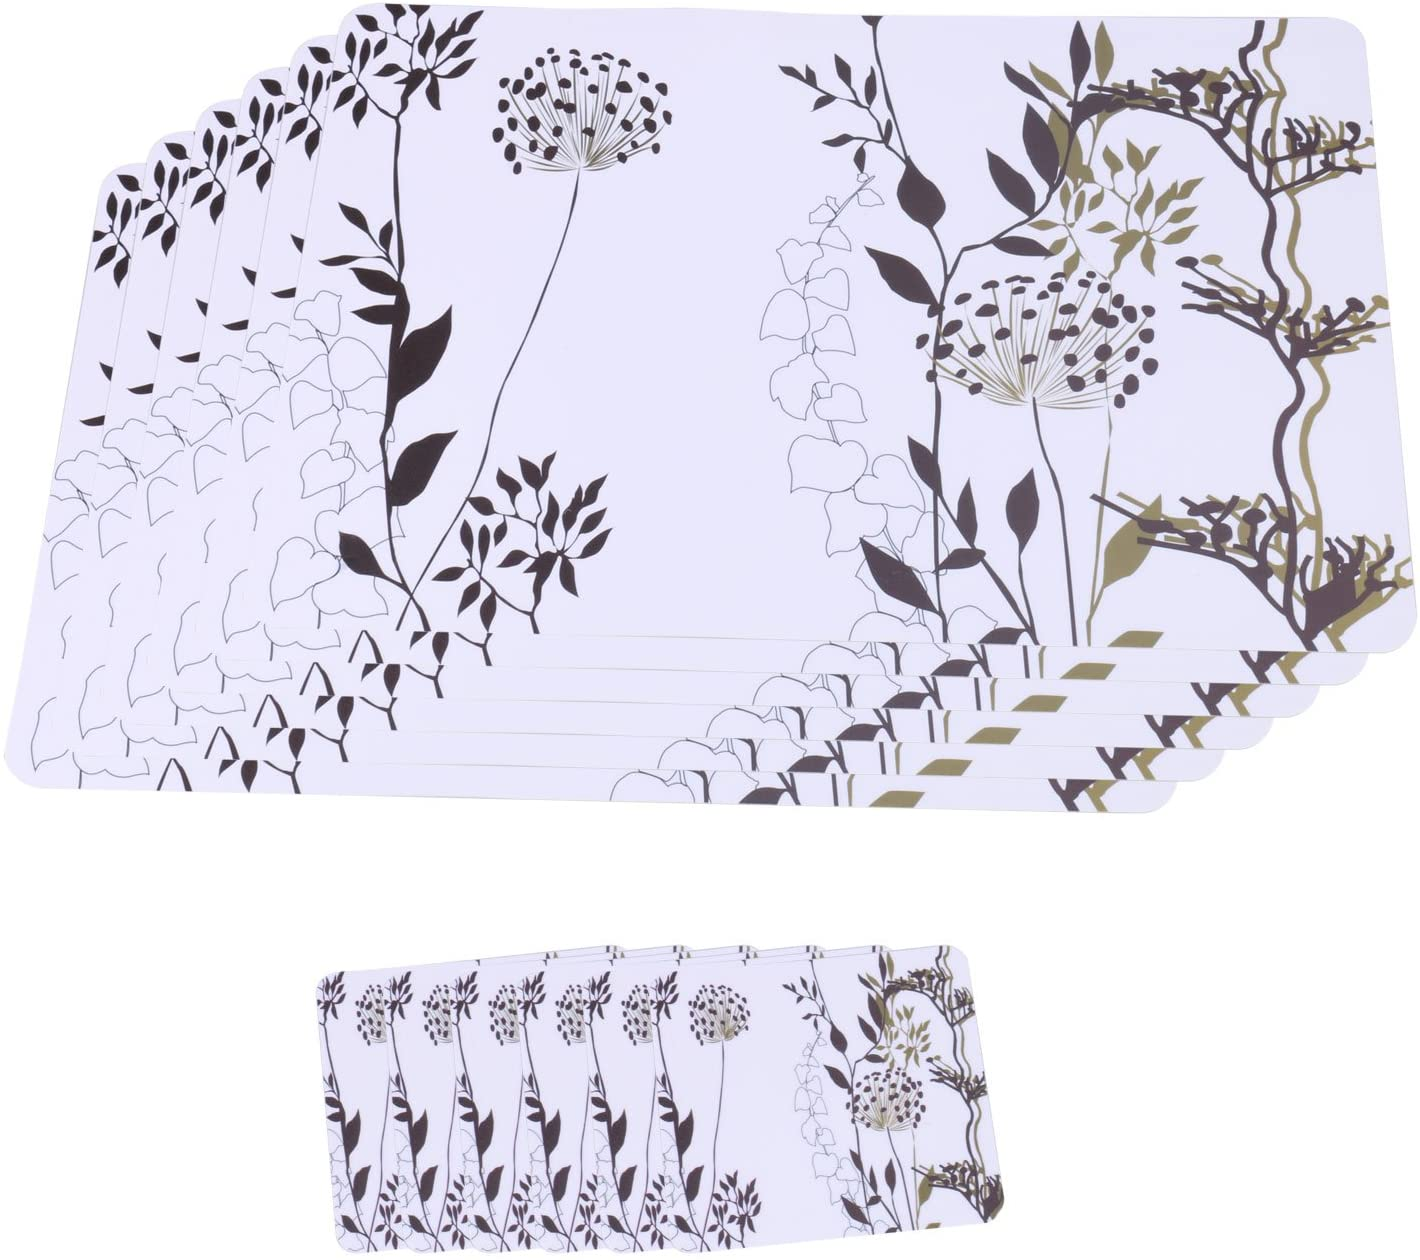 Clear Transparent Place Mats Kitchen Table Black and White Placemats for Dining Table Mats Set of 6 + 6